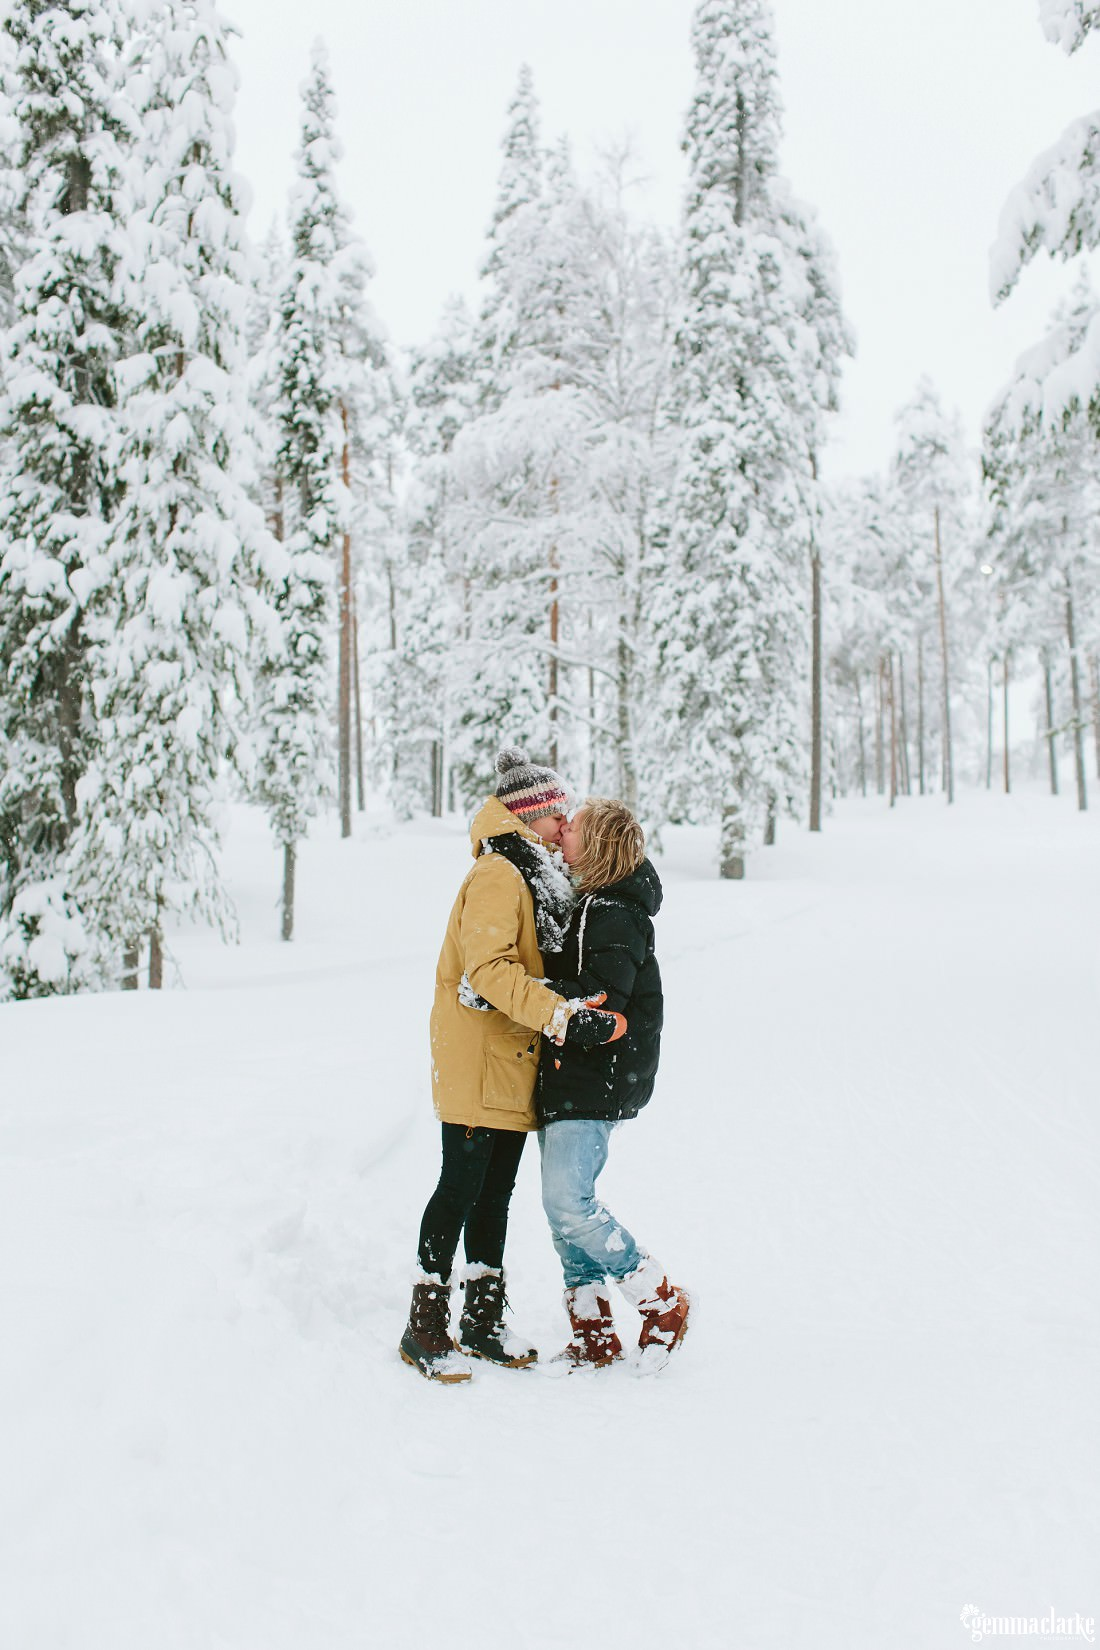 A couple kissing in a snow covered forest